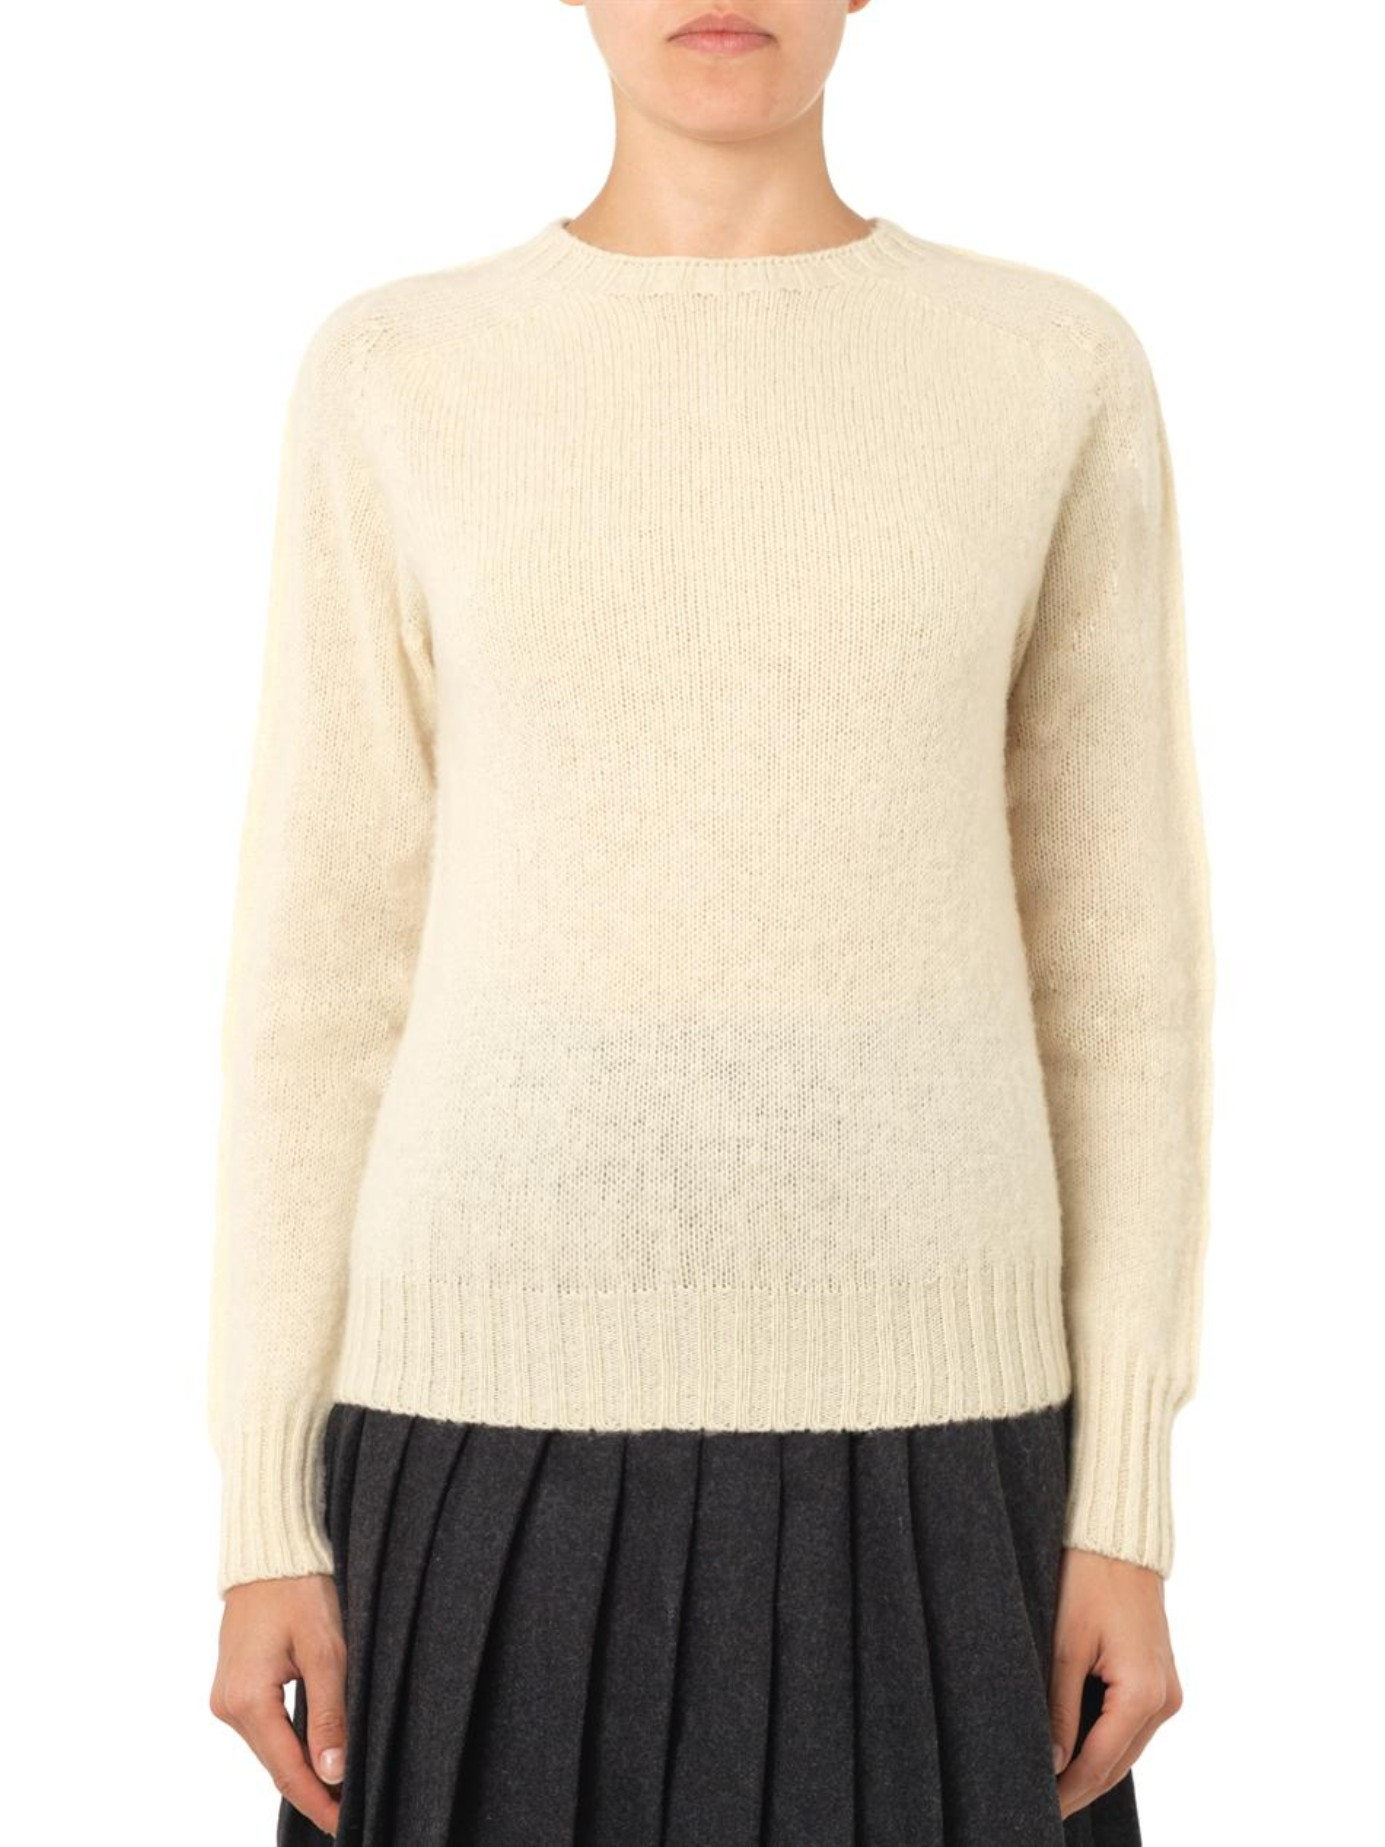 Ymc Wool-knit Sweater in Natural | Lyst